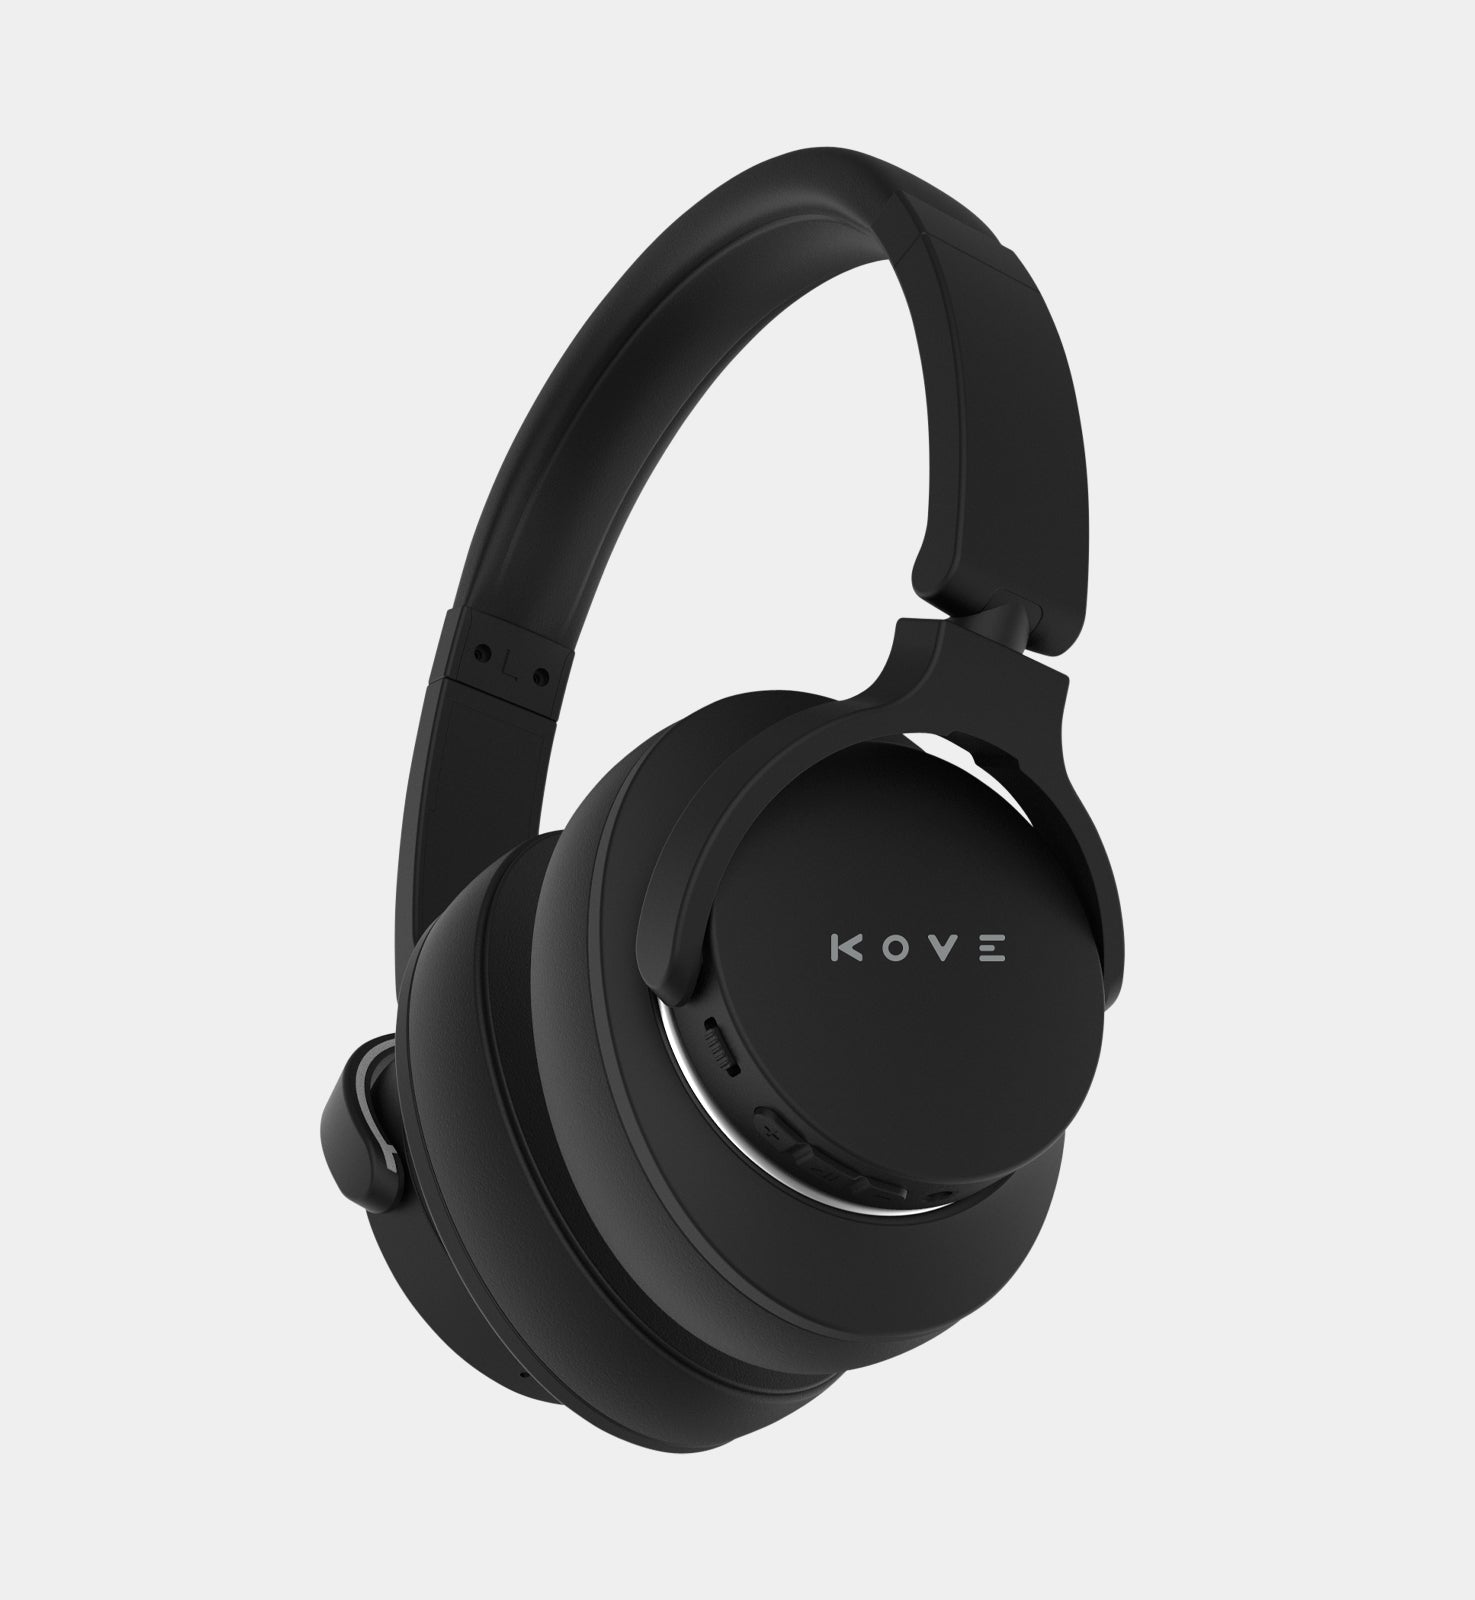 65% off Sitewide at Kove Speakers